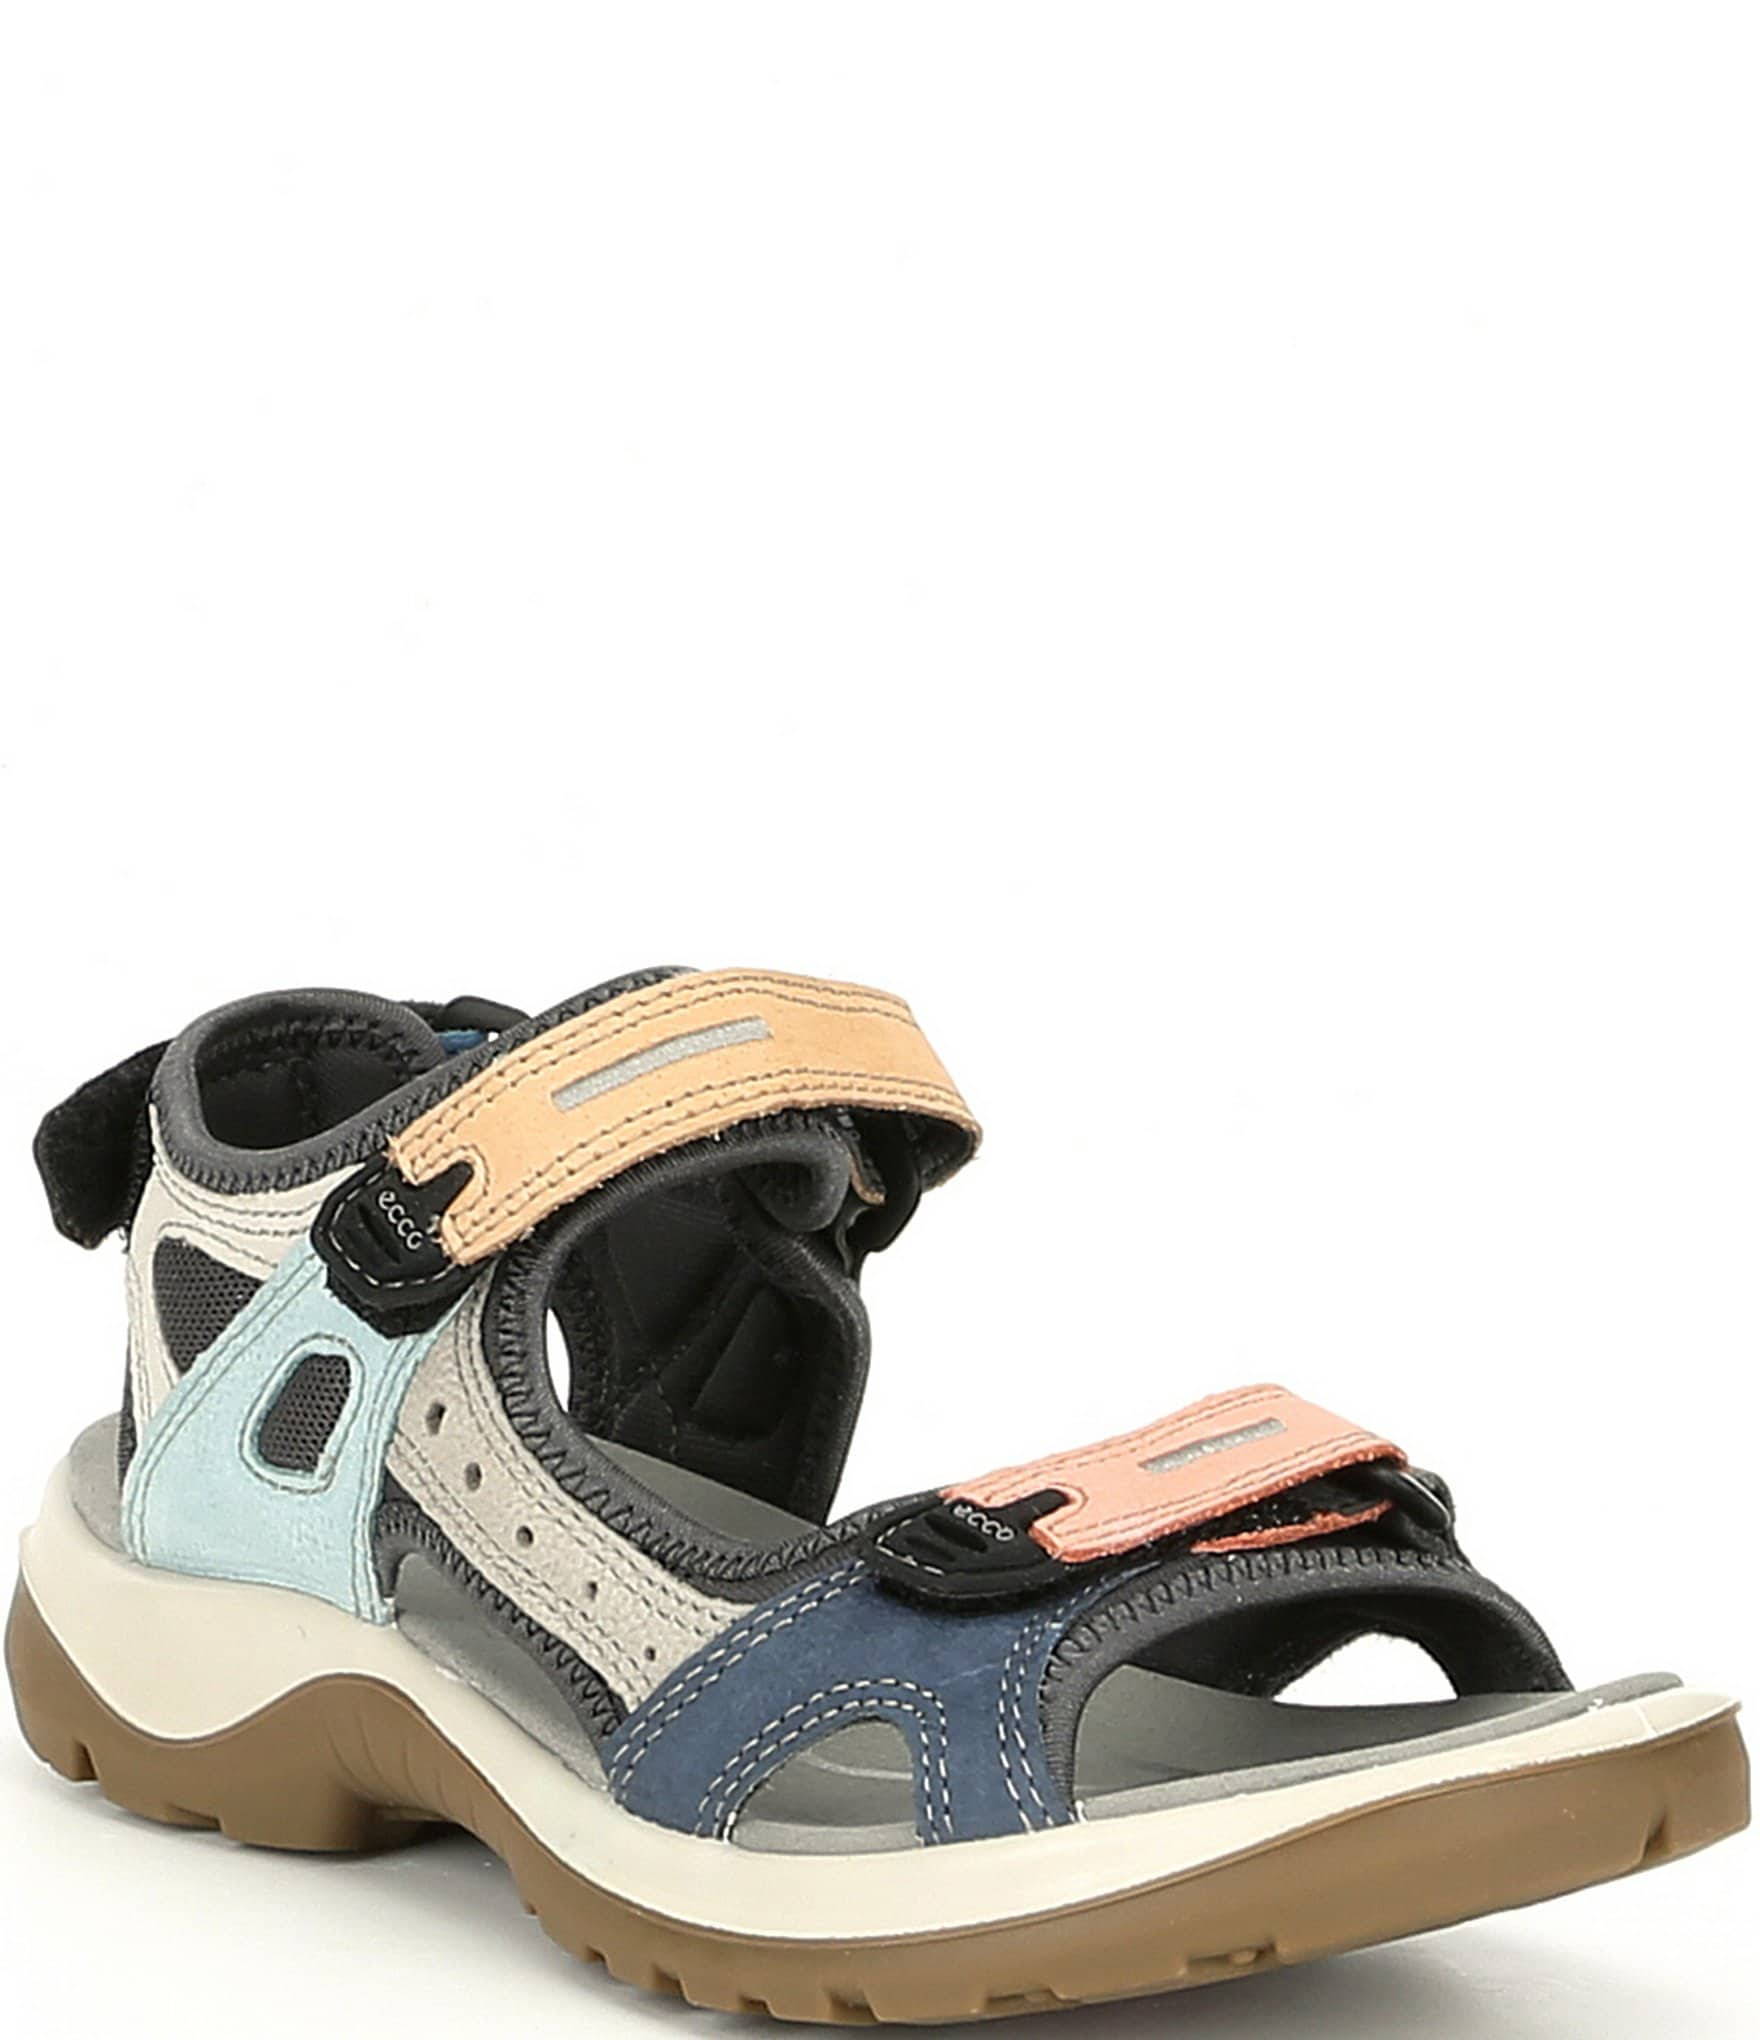 ECCO Women's Yucatan Offroad Multi Colored Banded Outdoor Sandals | Dillard's